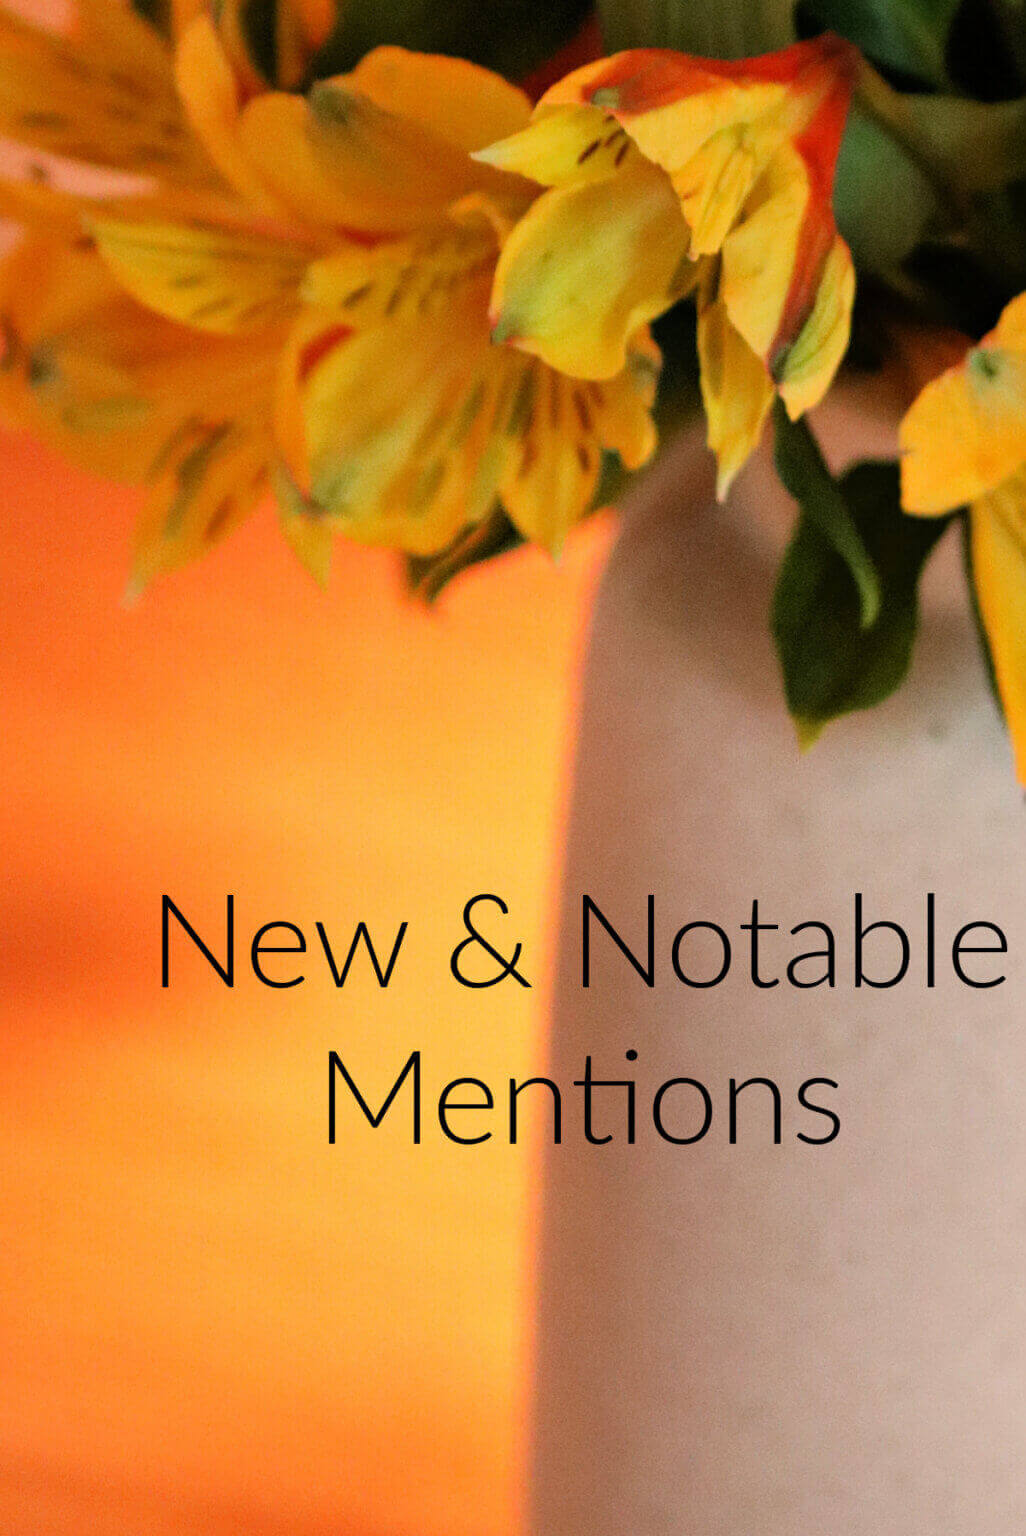 New & Notable Mentions #10